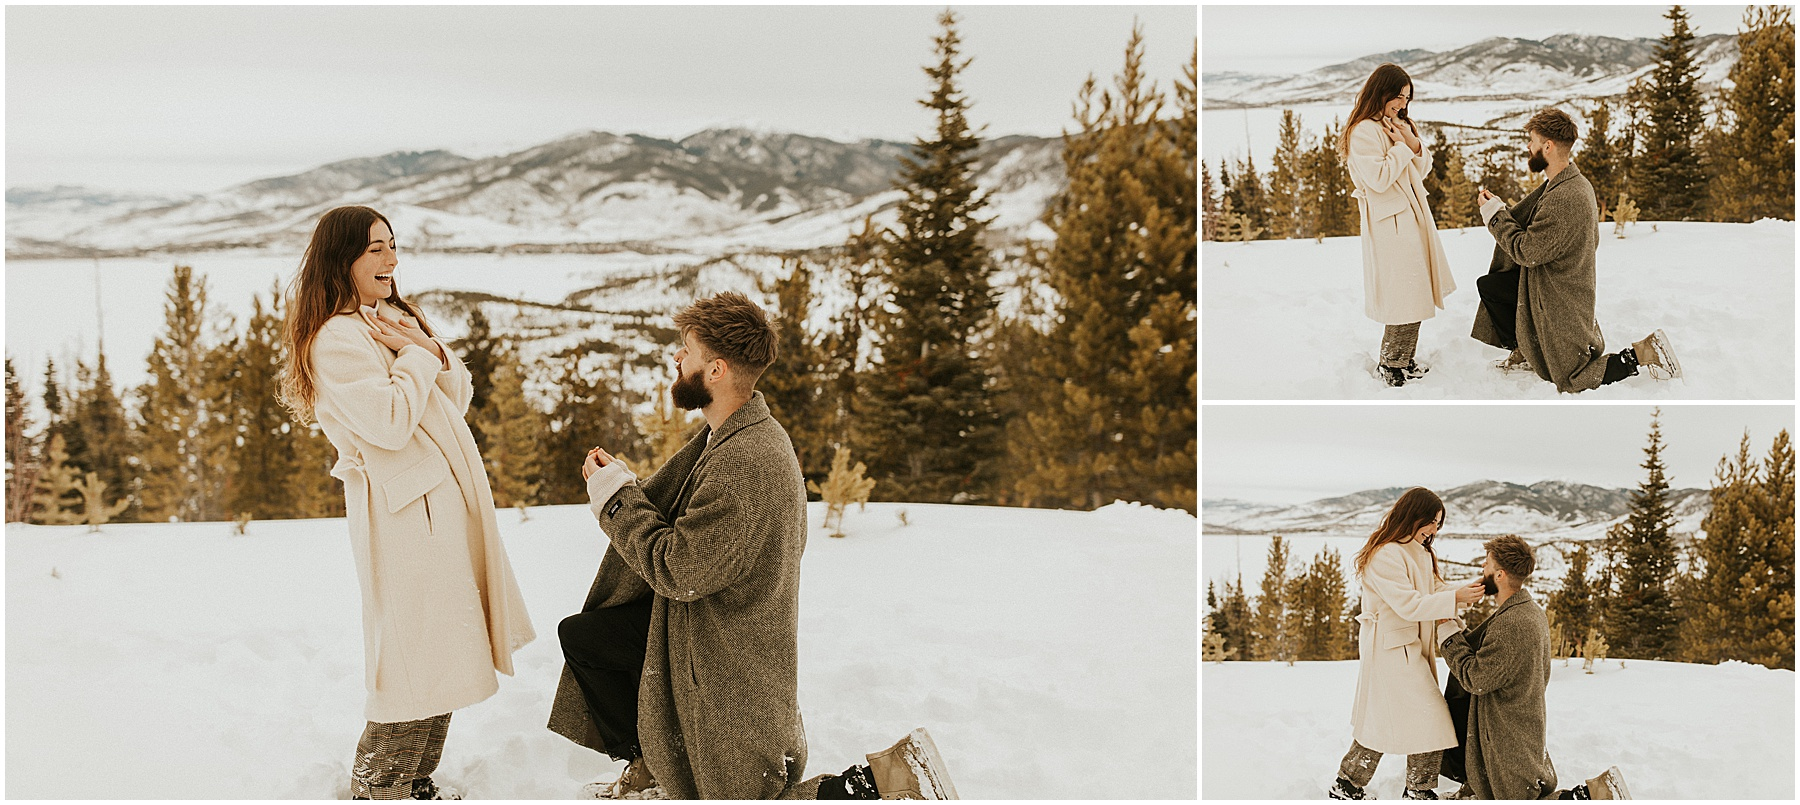 Proposal and engagement session in Breckenridge, Colorado Saphire Point_0350.jpg